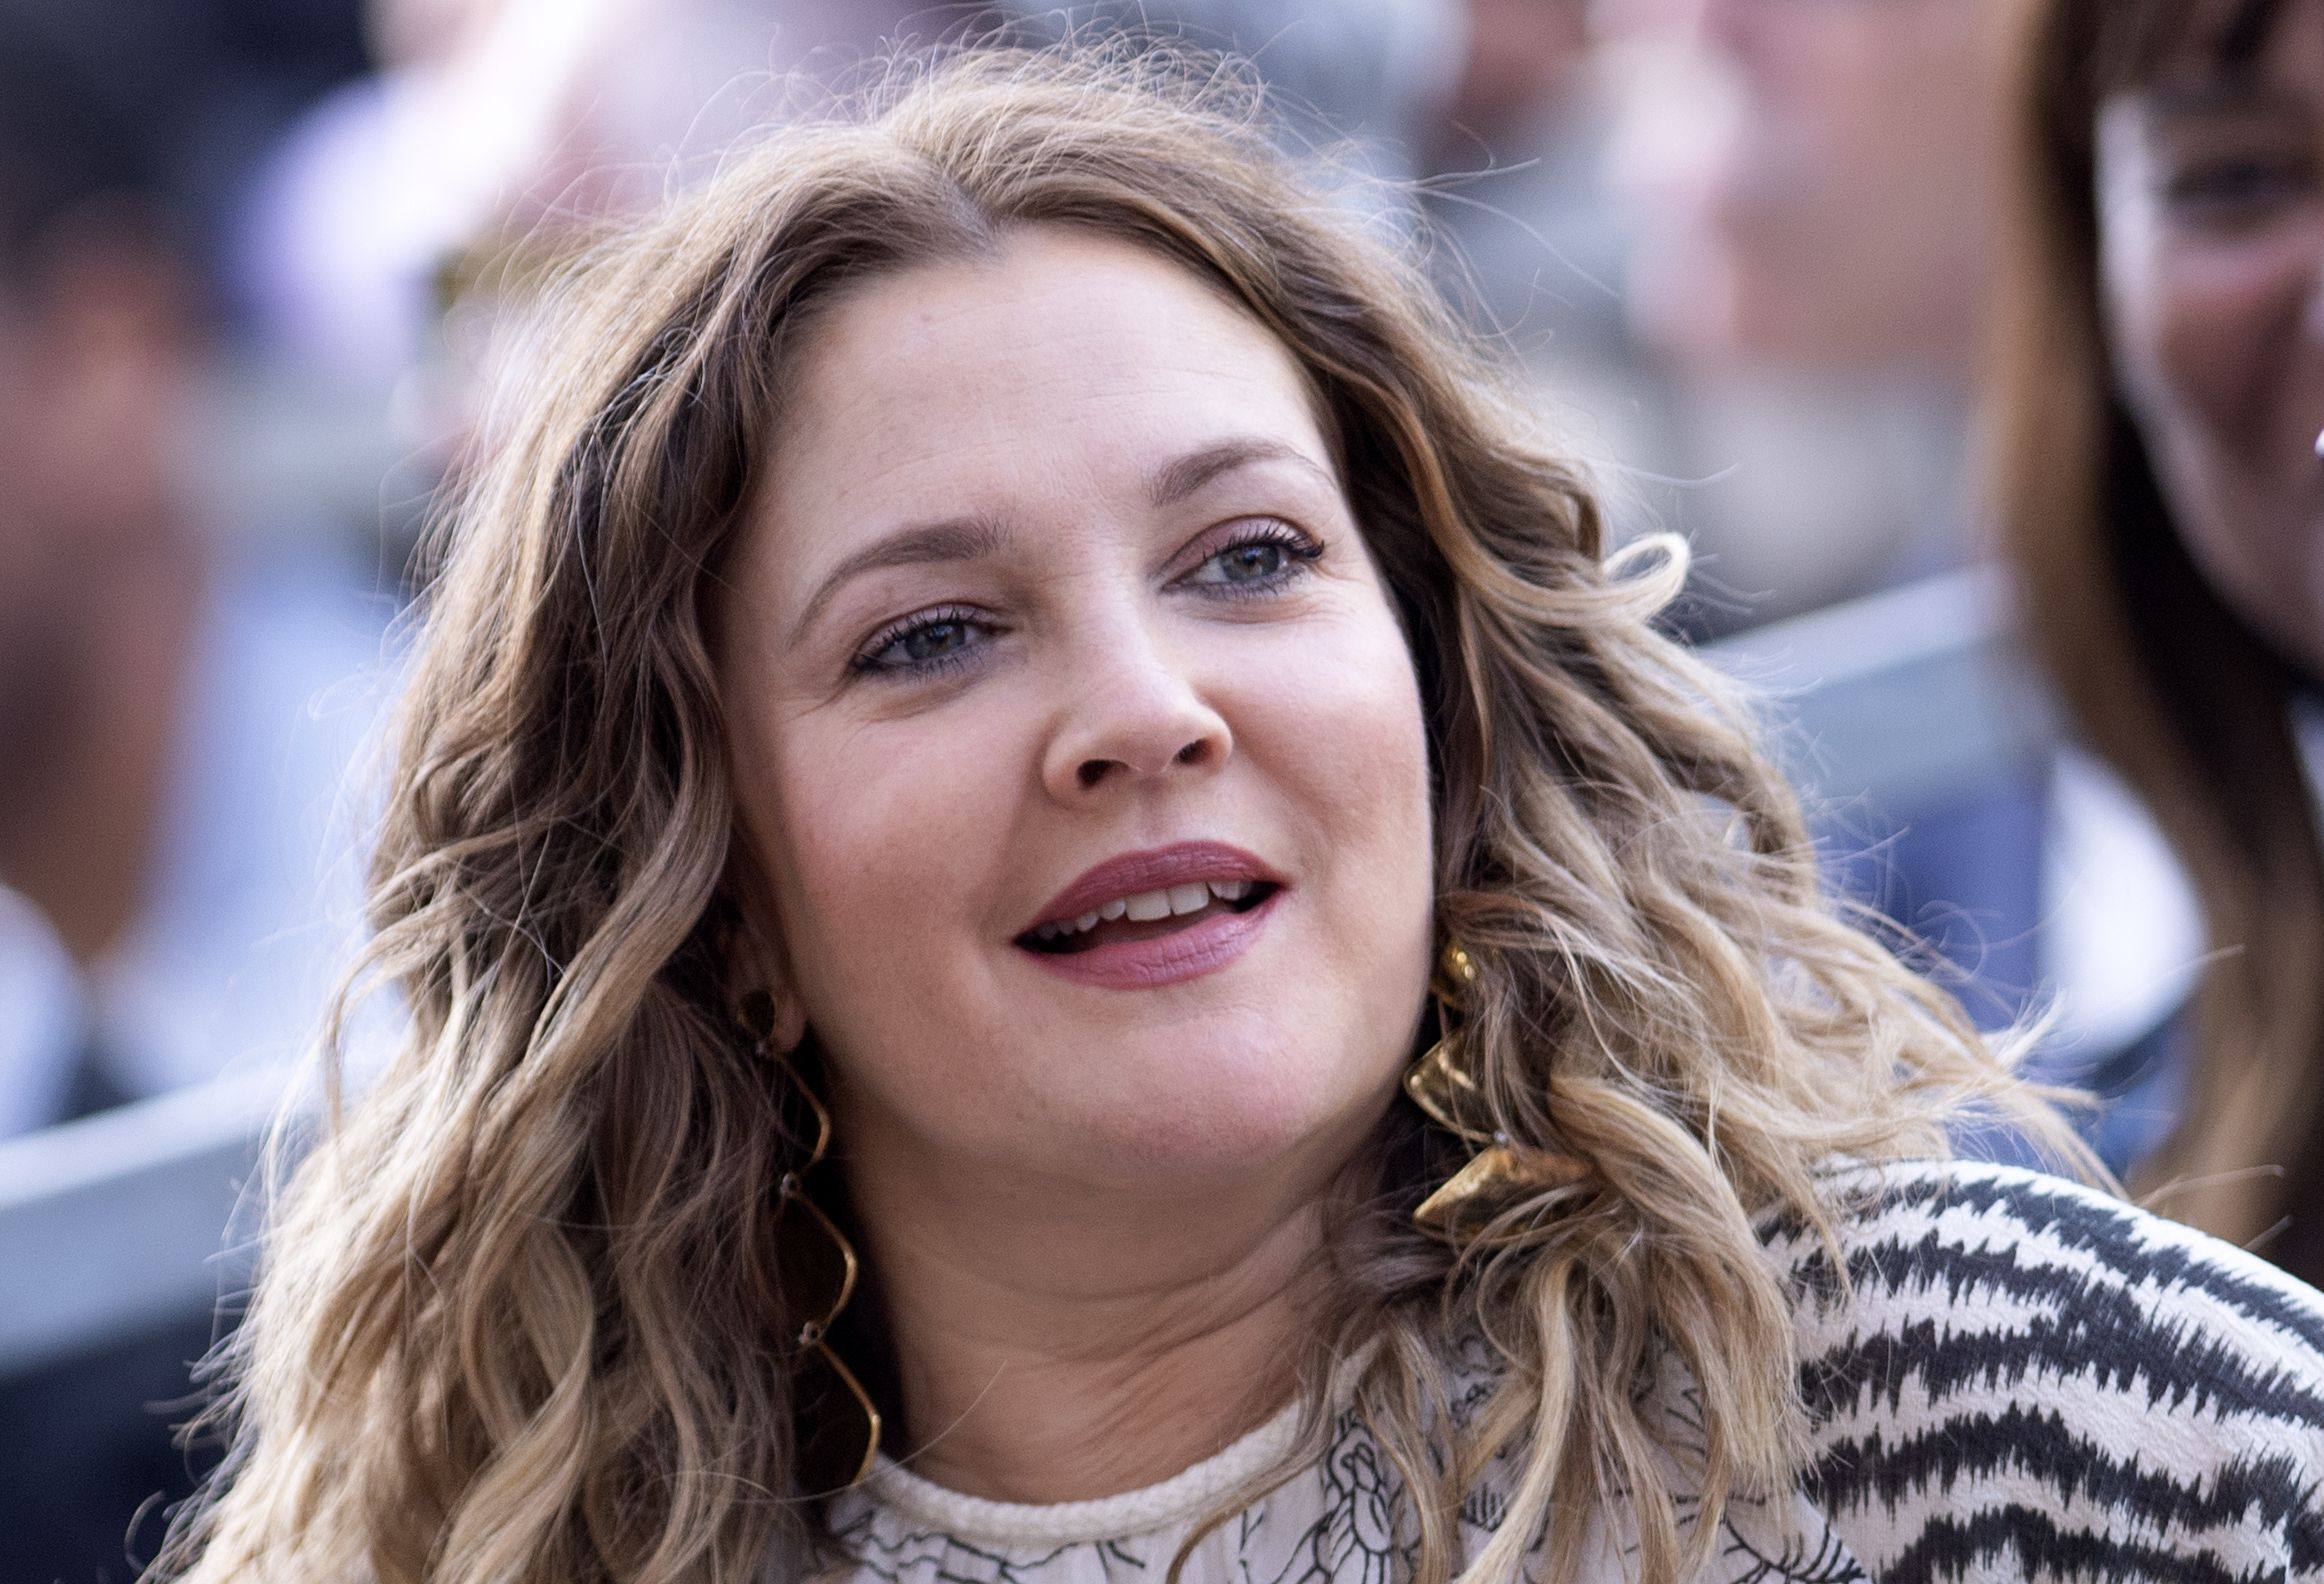 Drew Barrymore's Children Got Pet Mice And She Posted A Video Of One Crawling In Her Hair